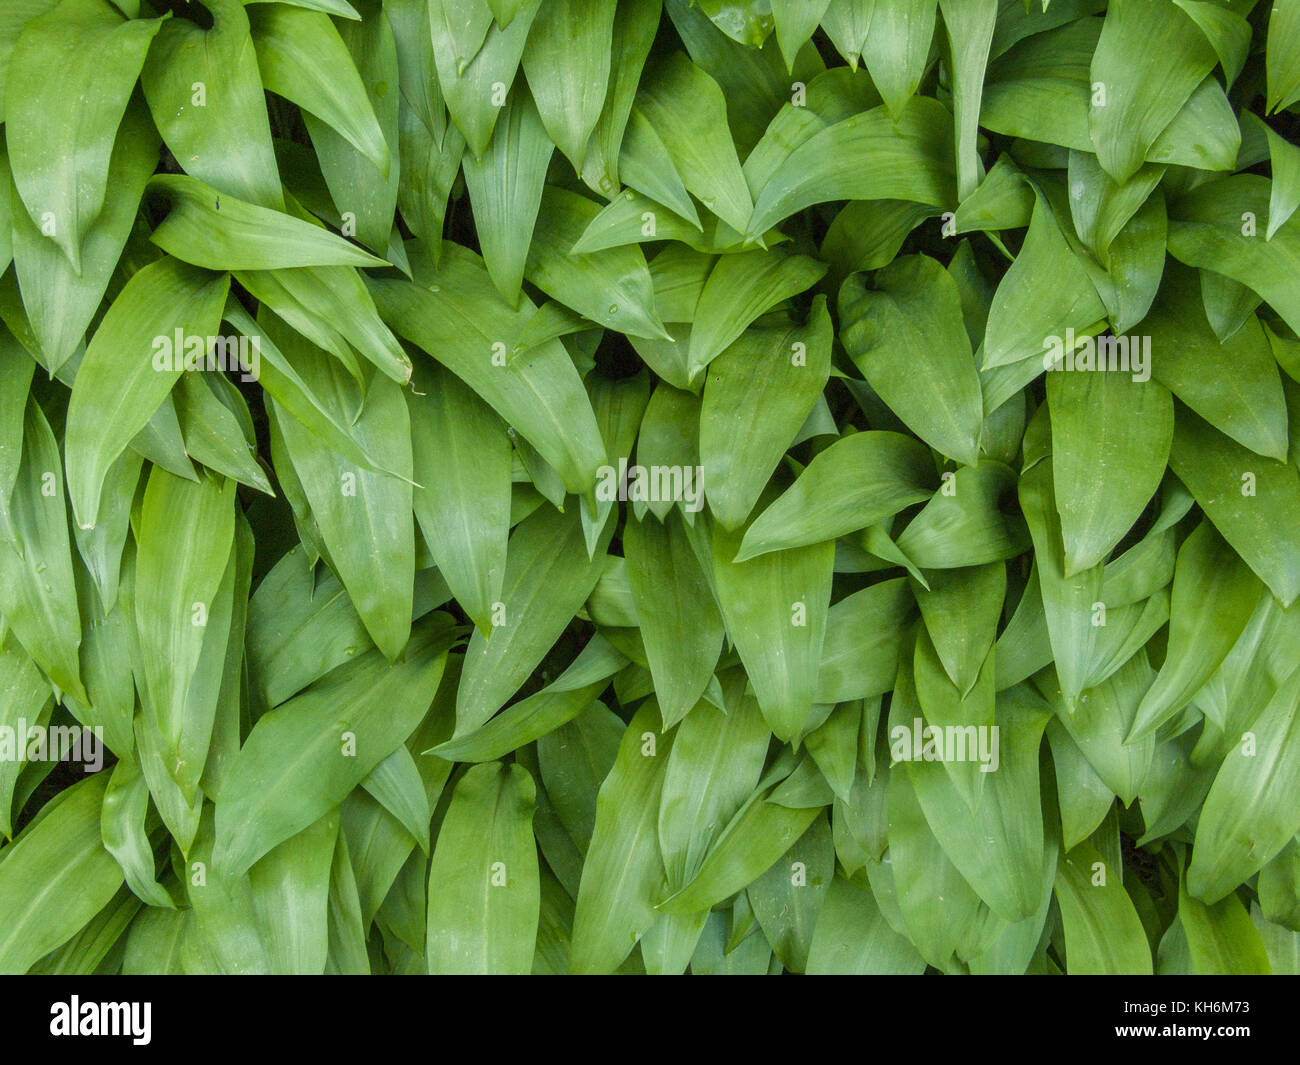 Foliage of wild garlic known as Ramsons (Allium ursinum) growing in the wild. Foraged leaves make an excellent kitchen - Stock Image